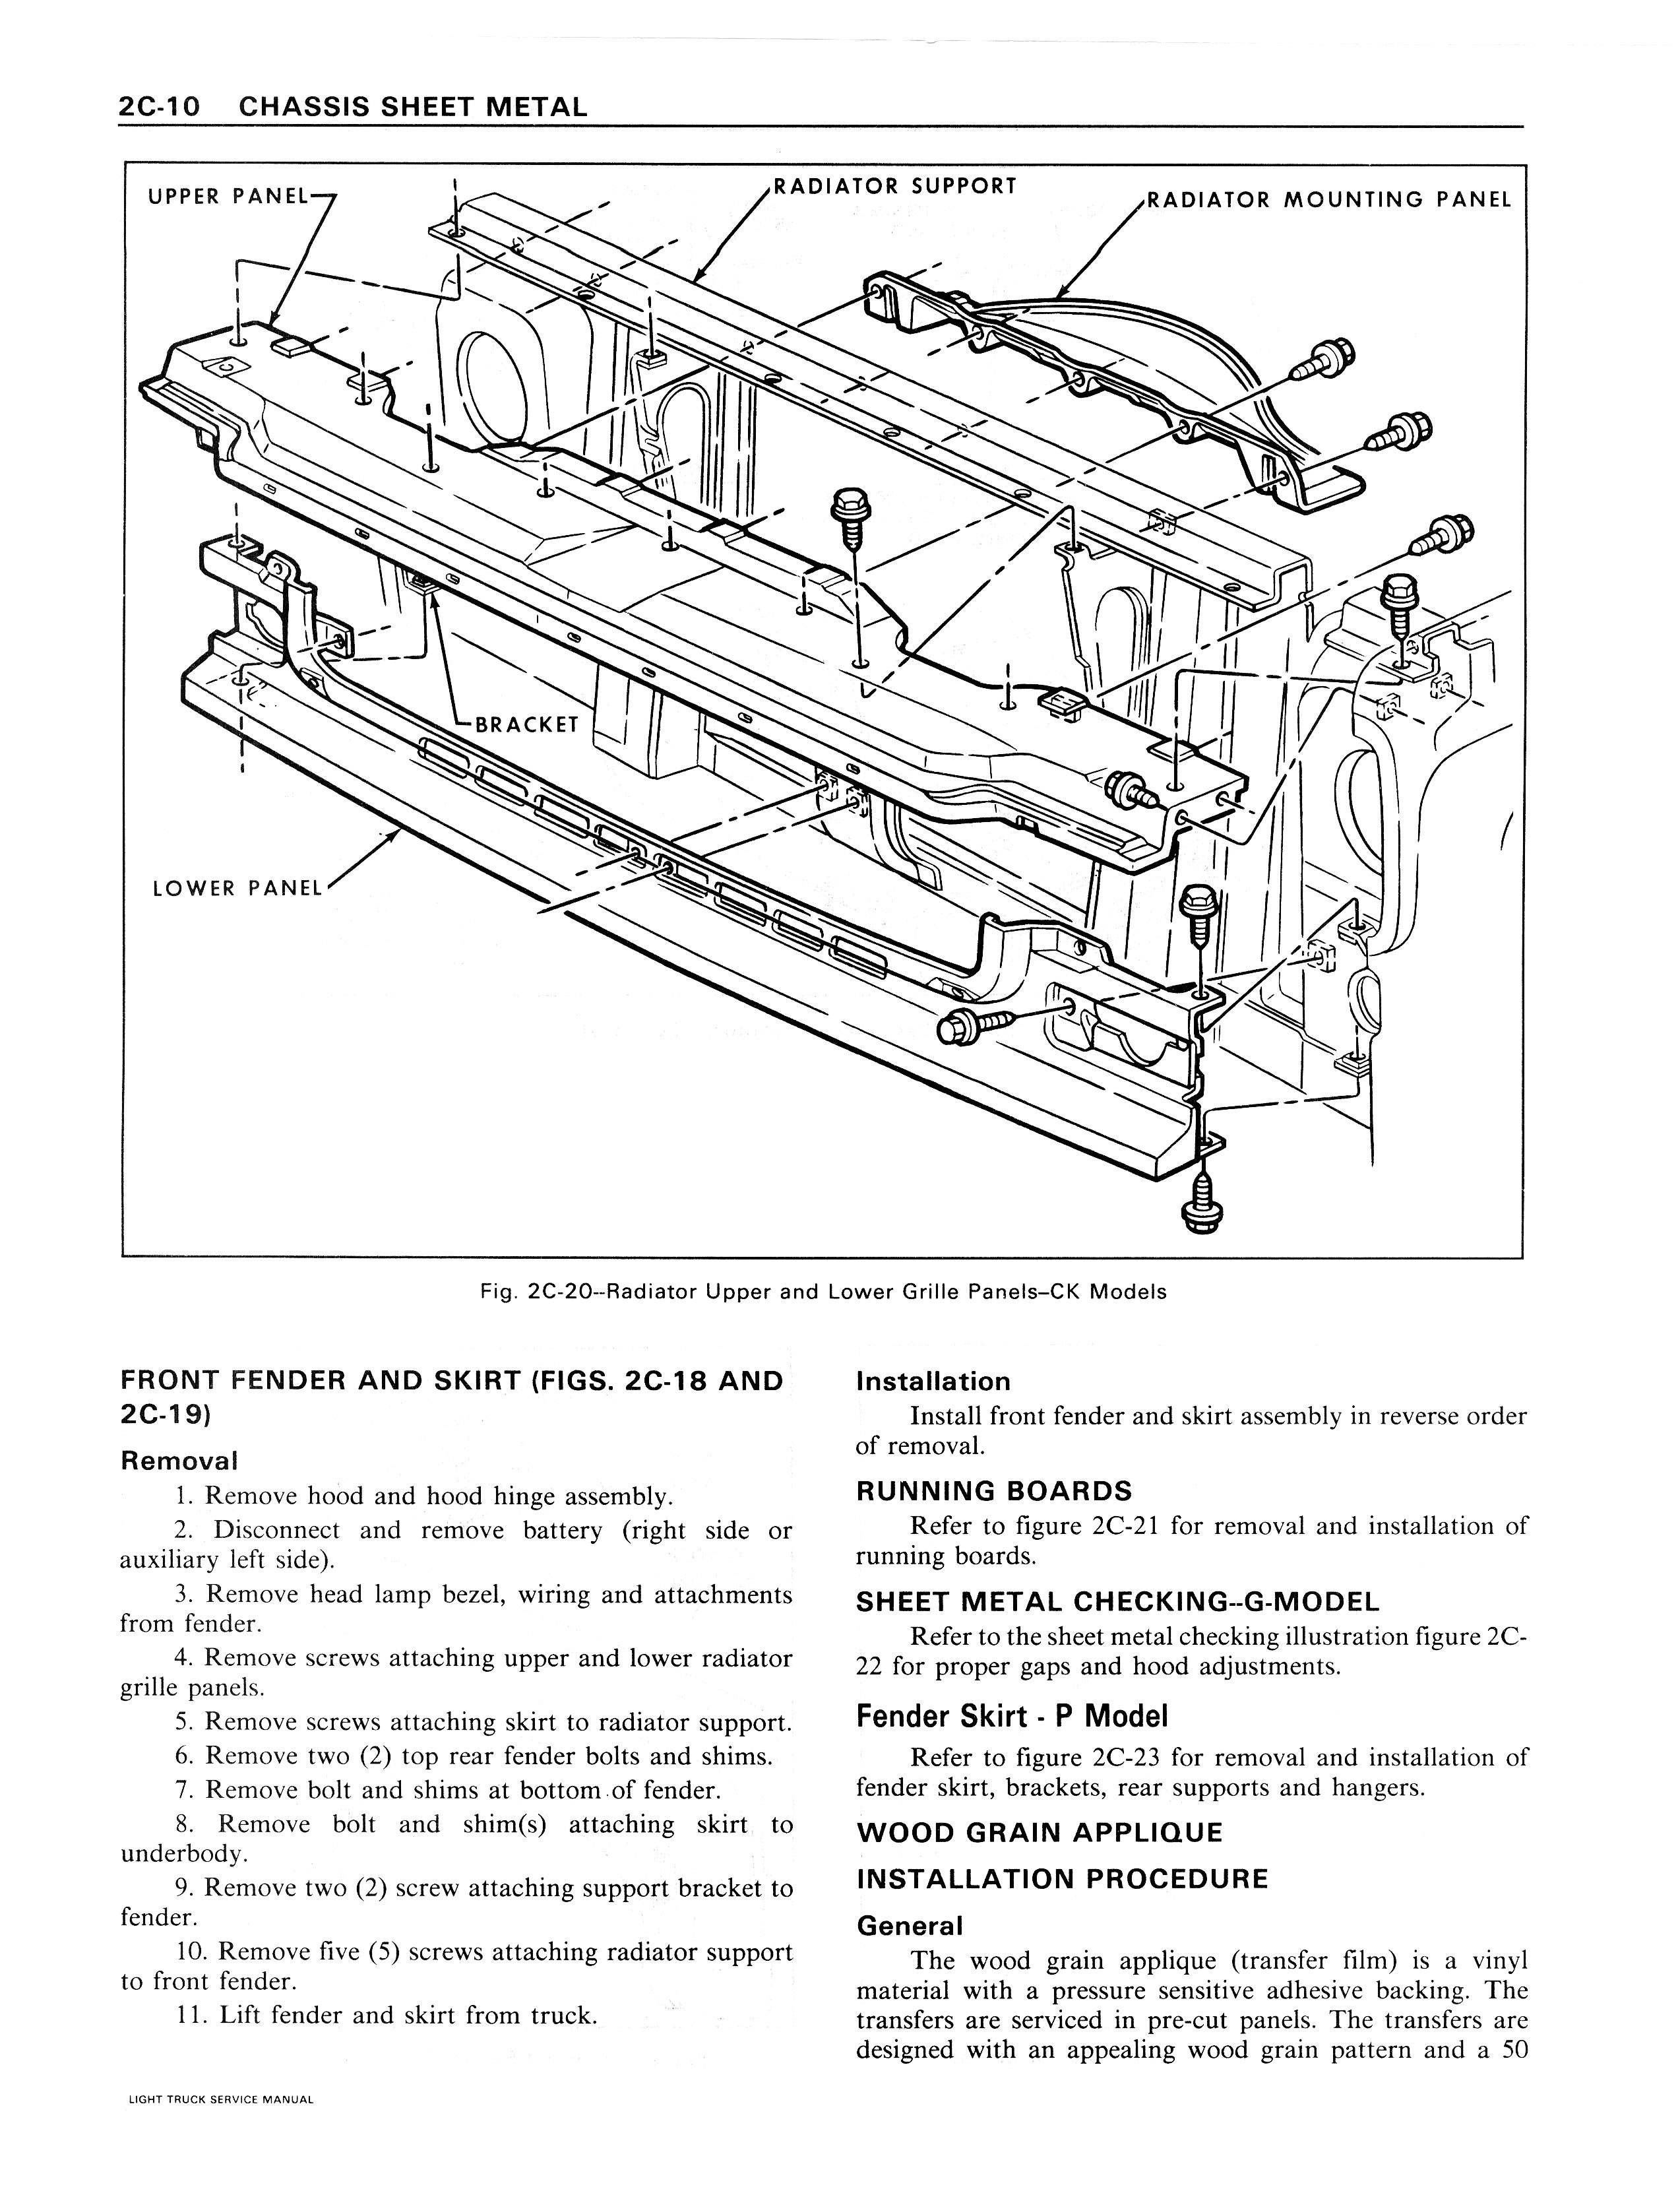 1979 GMC Series 10-35 Chassis Sheet Metal